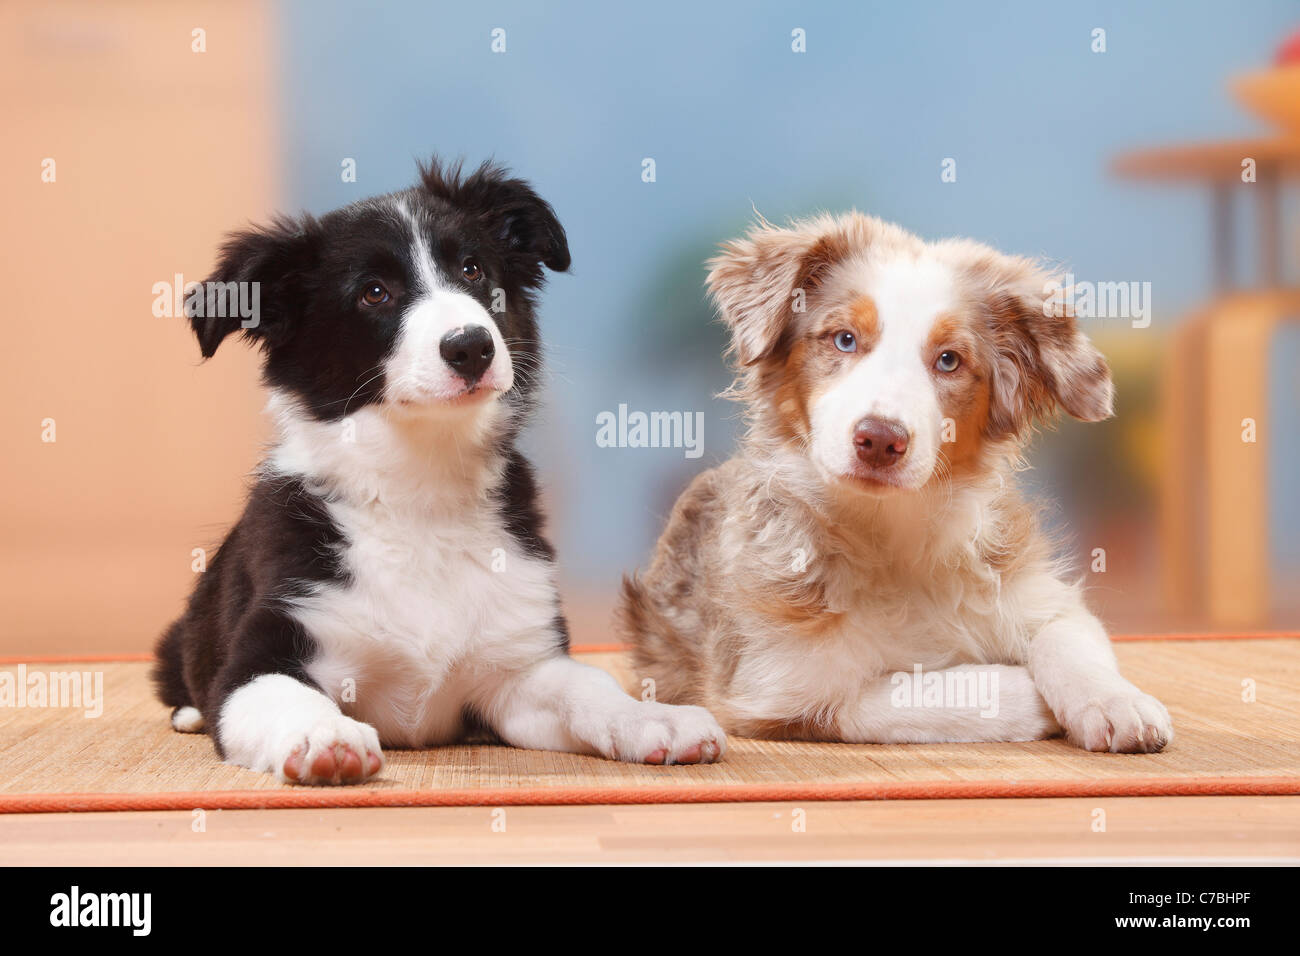 Australian Shepherd Puppy Red Merle 19 Weeks And Border Collie Stock Photo Alamy